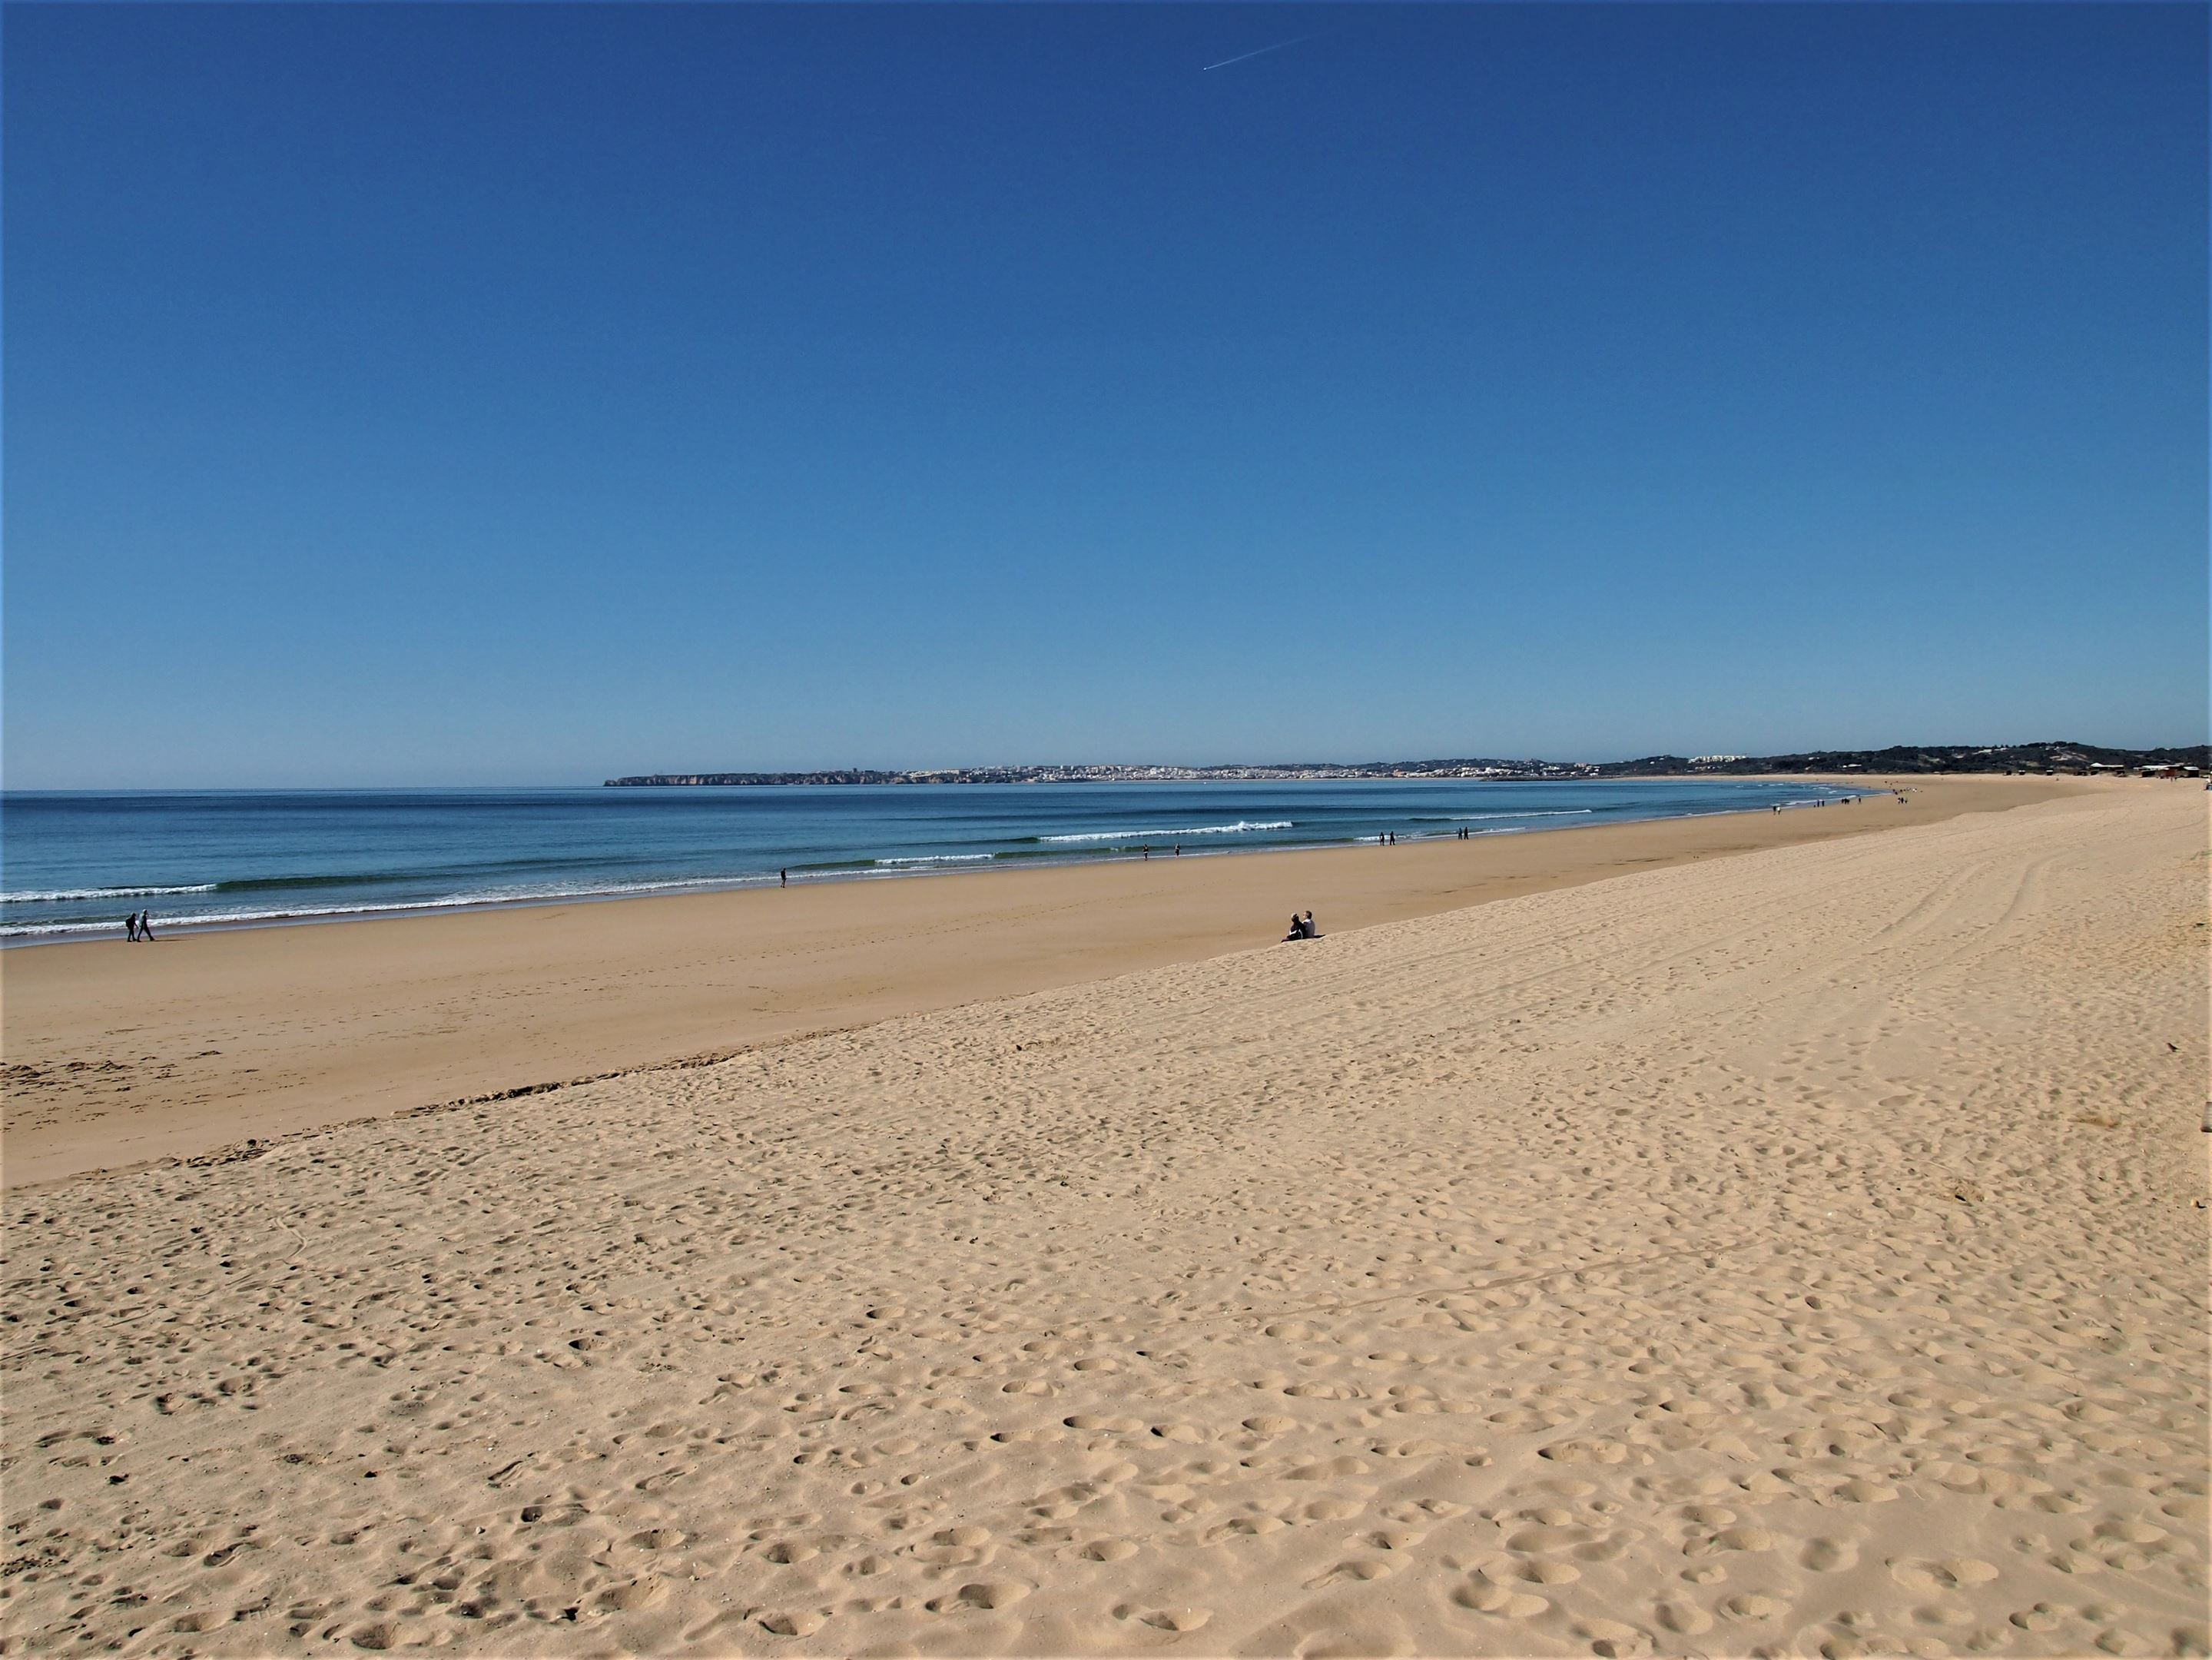 Praia de Alvor - more than 3.5km of soft golden sand